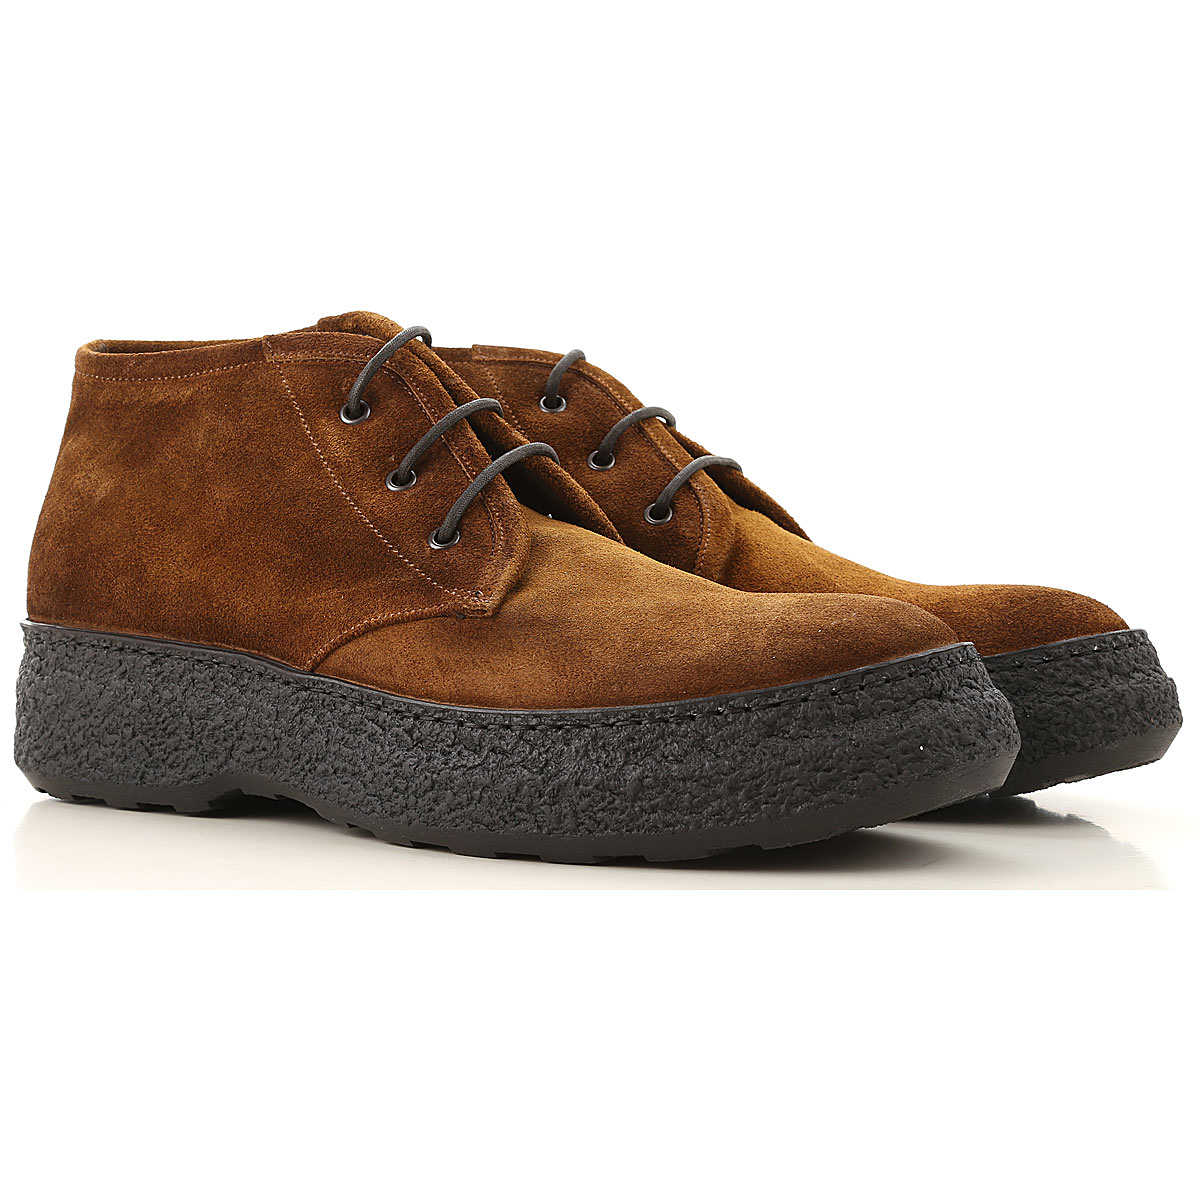 Pantanetti Lace Up Shoes for Men Oxfords 6.5 7 8 9 Derbies and Brogues UK - GOOFASH